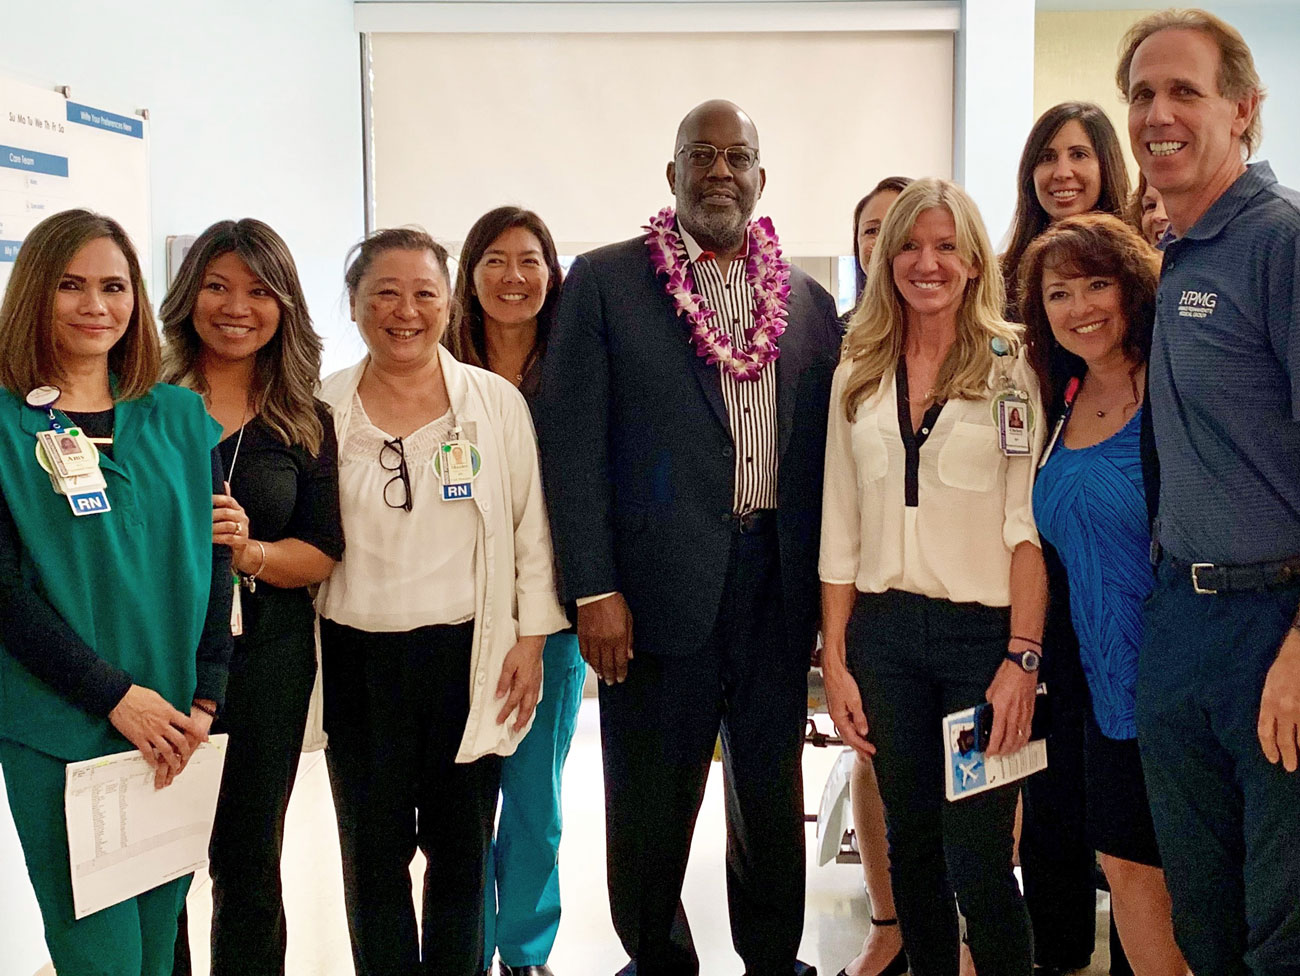 Bernard J. Tyson posing with a group of Kaiser Permanente nurses from Hawaii